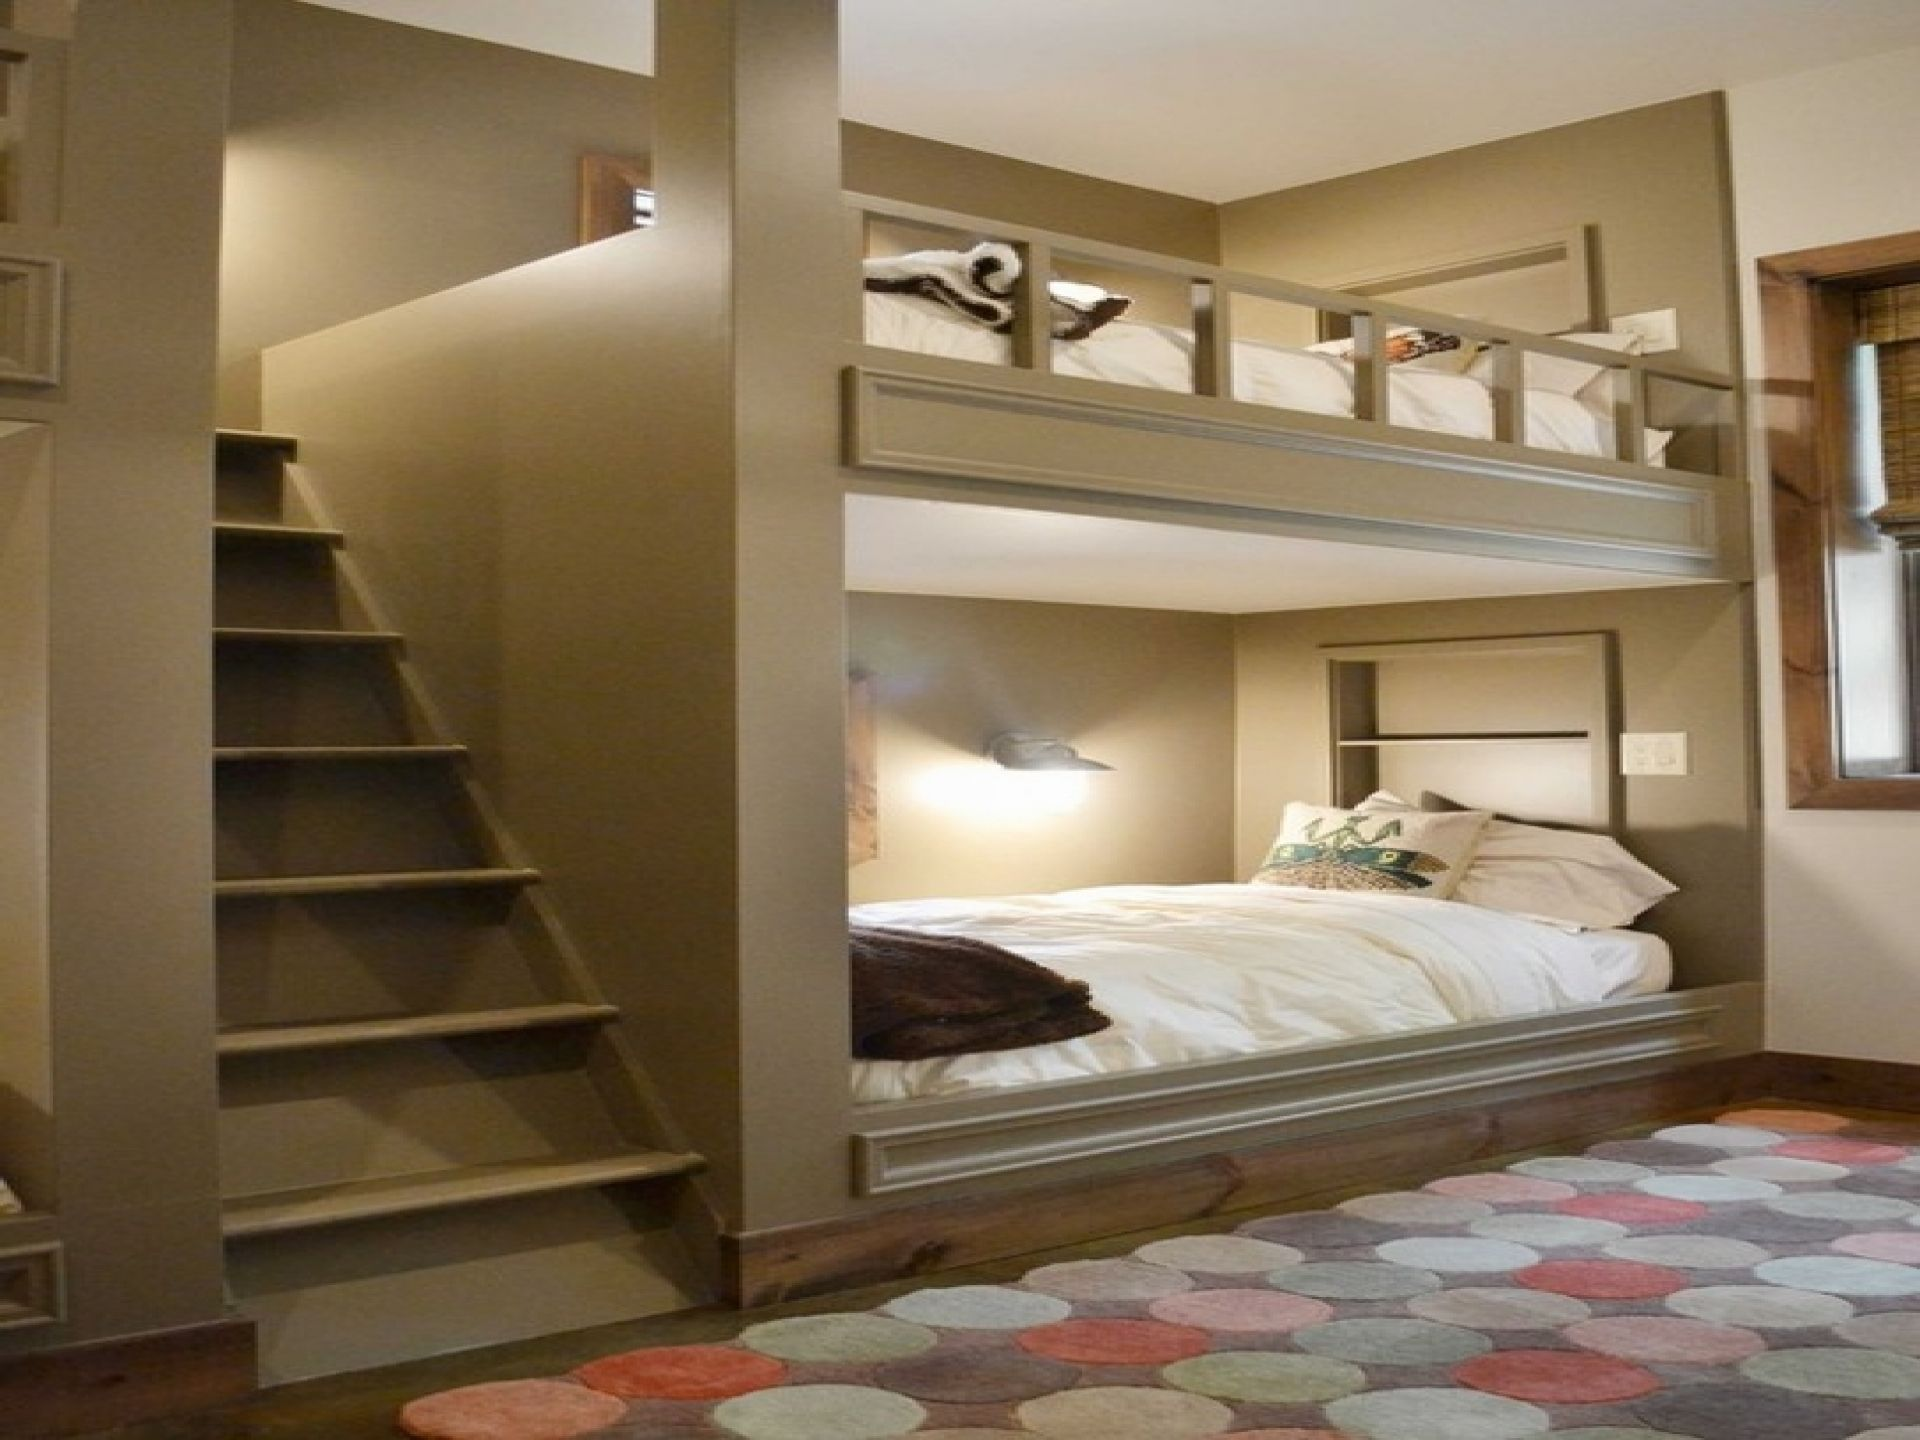 Unique Elegant Ideas Unique Elegant Bunk Beds With Interiors Inside Ideas Interiors design about Everything [magnanprojects.com]